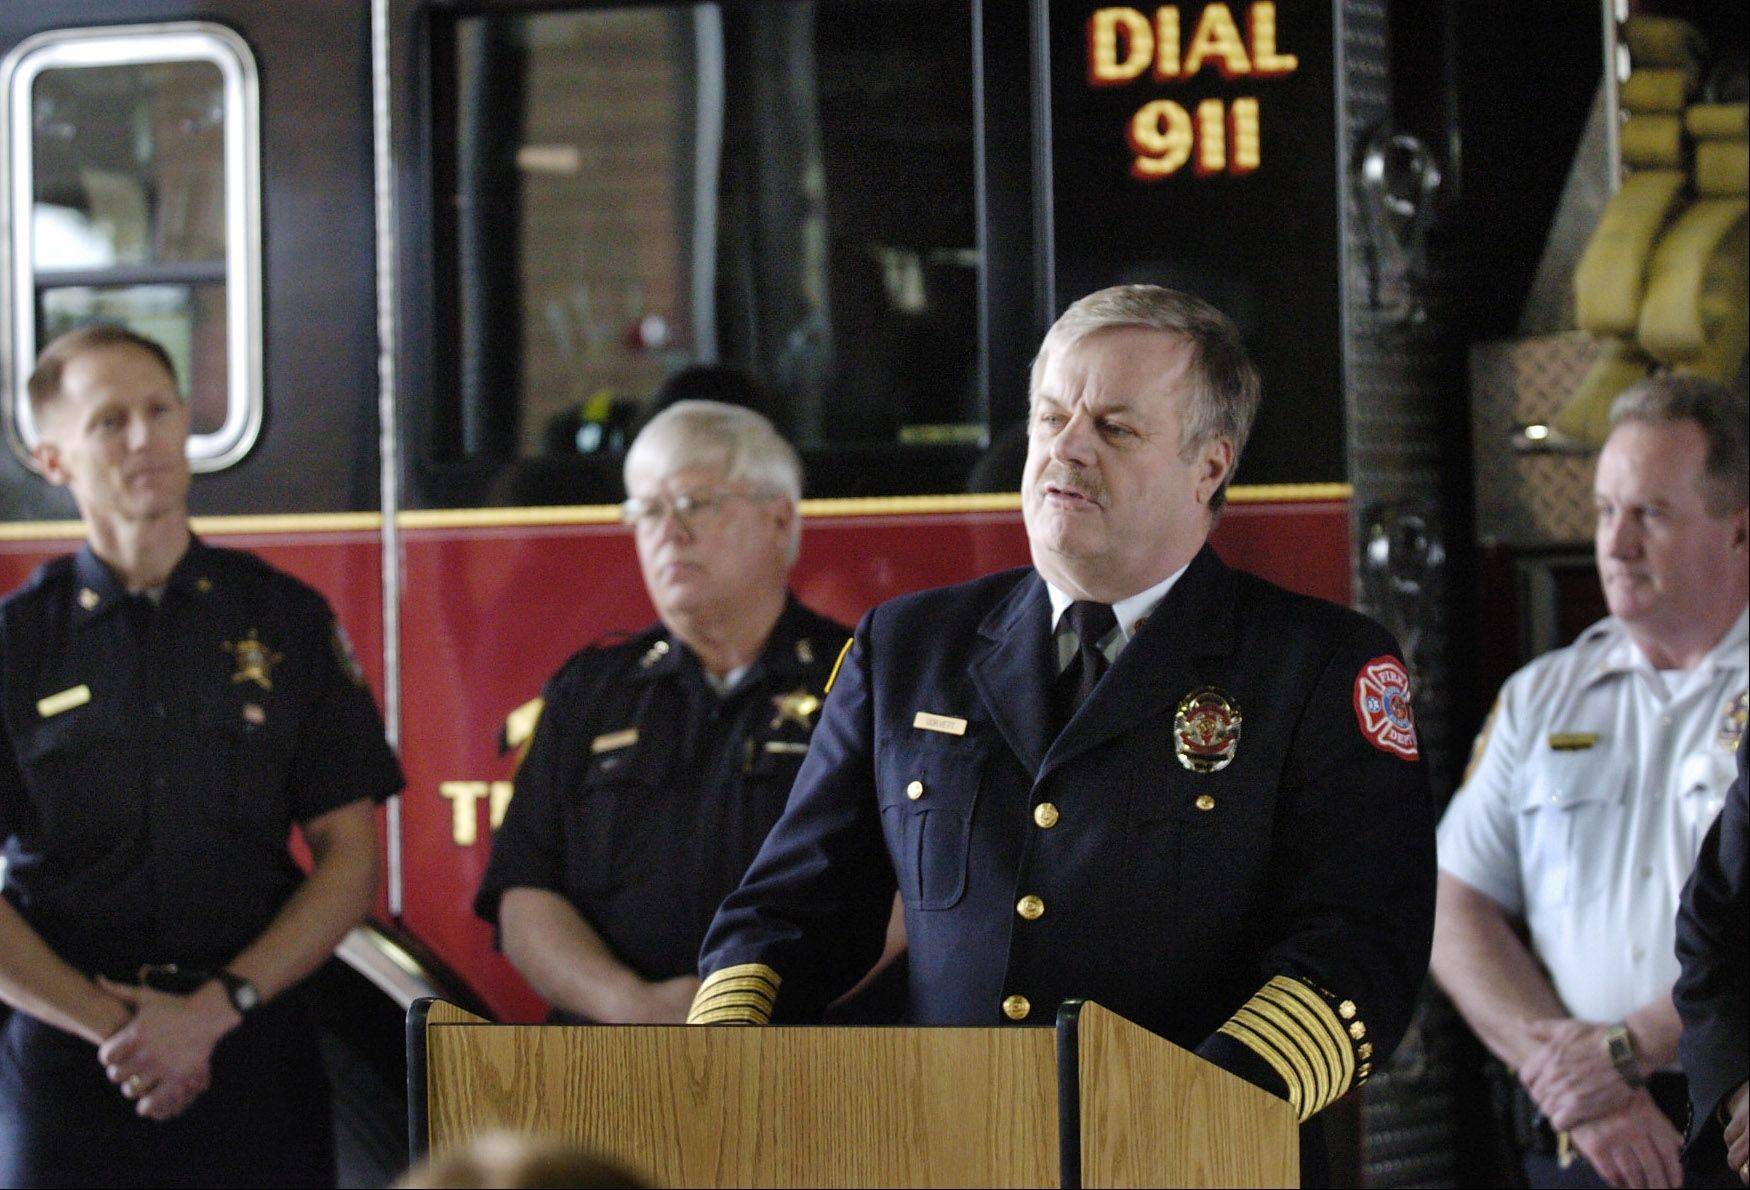 Hoffman Estates Fire Chief Robert Gorvett speaks to first responders in 2009. Gorvett is set to retire on June 30 after 38 years with the department.